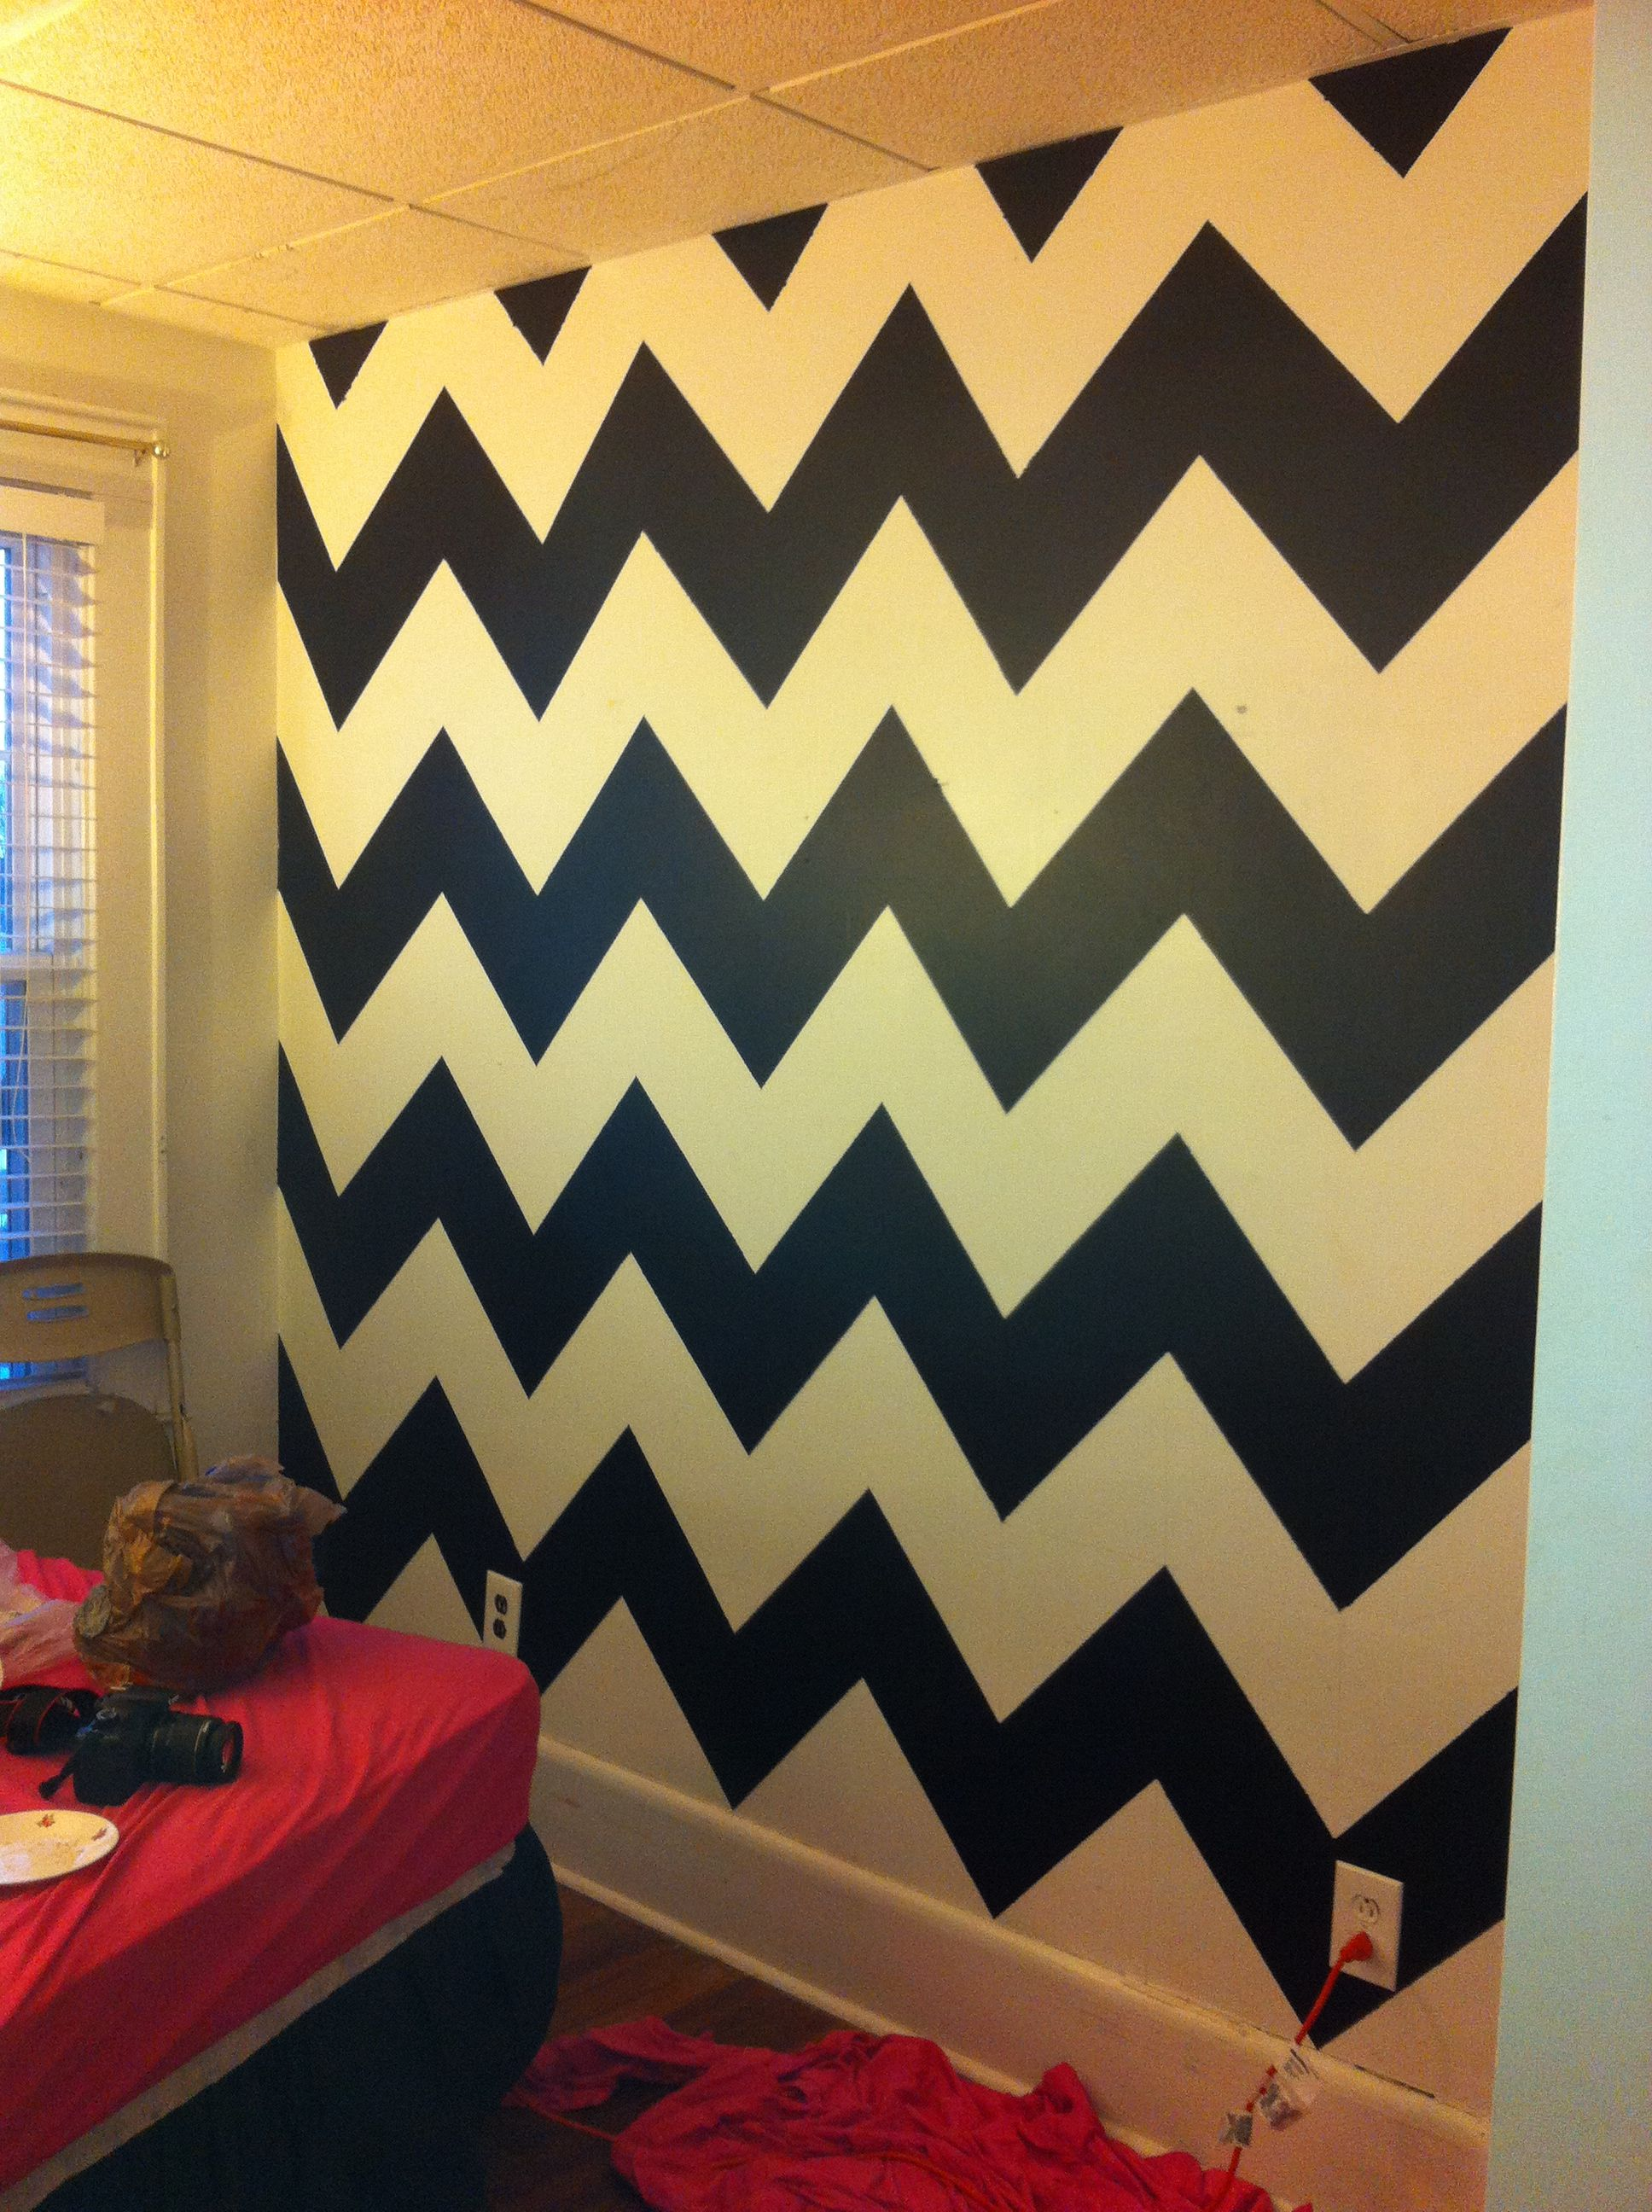 Black And White Chevron Bedroom Walls Chevron Bedroom Walls Chevron Bedroom Tan Walls